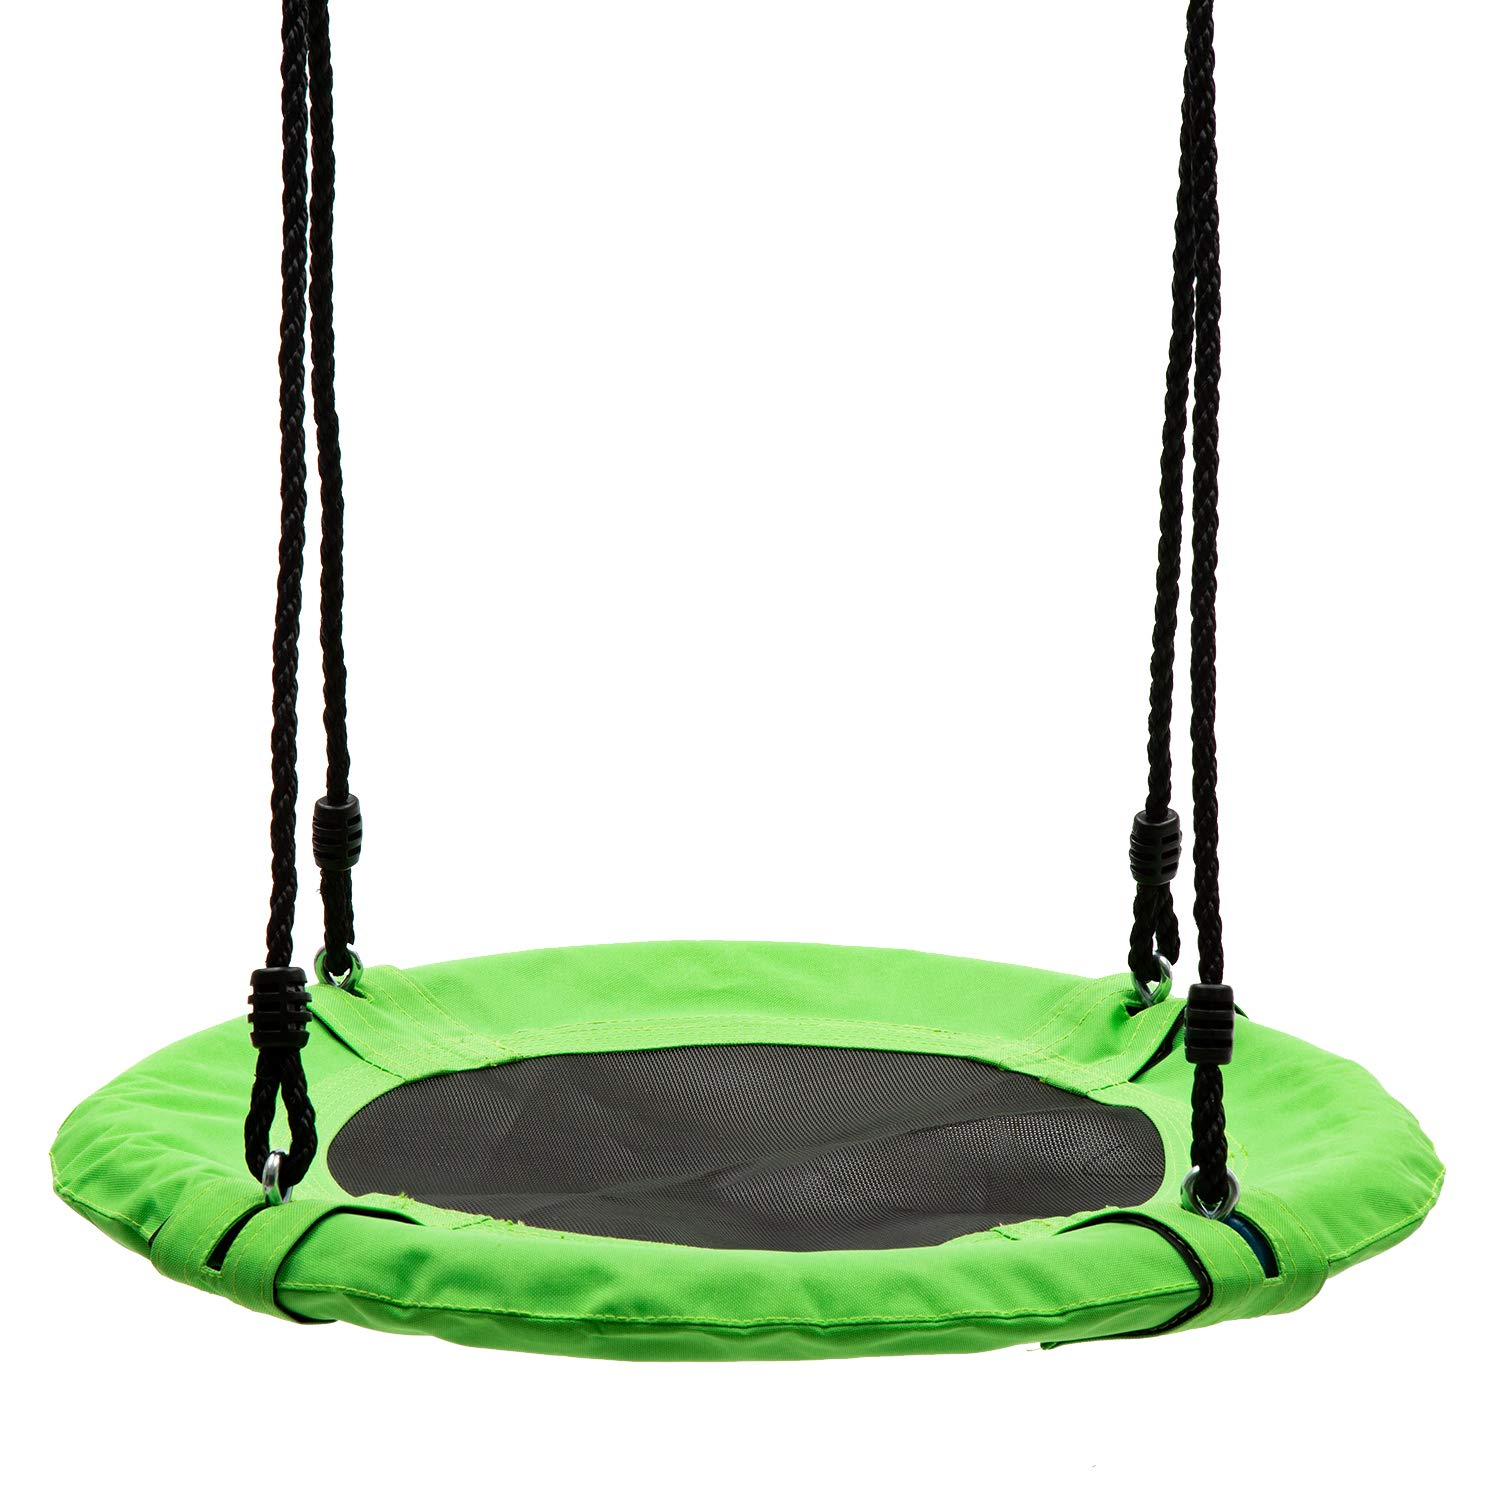 walsport 24'' Flying Saucer Tree Swing Green 330 Pound Capacity Safe and Durable Swing Seat Hanging Tree for Kids Adults Outdoor Garden Backyard by walsport